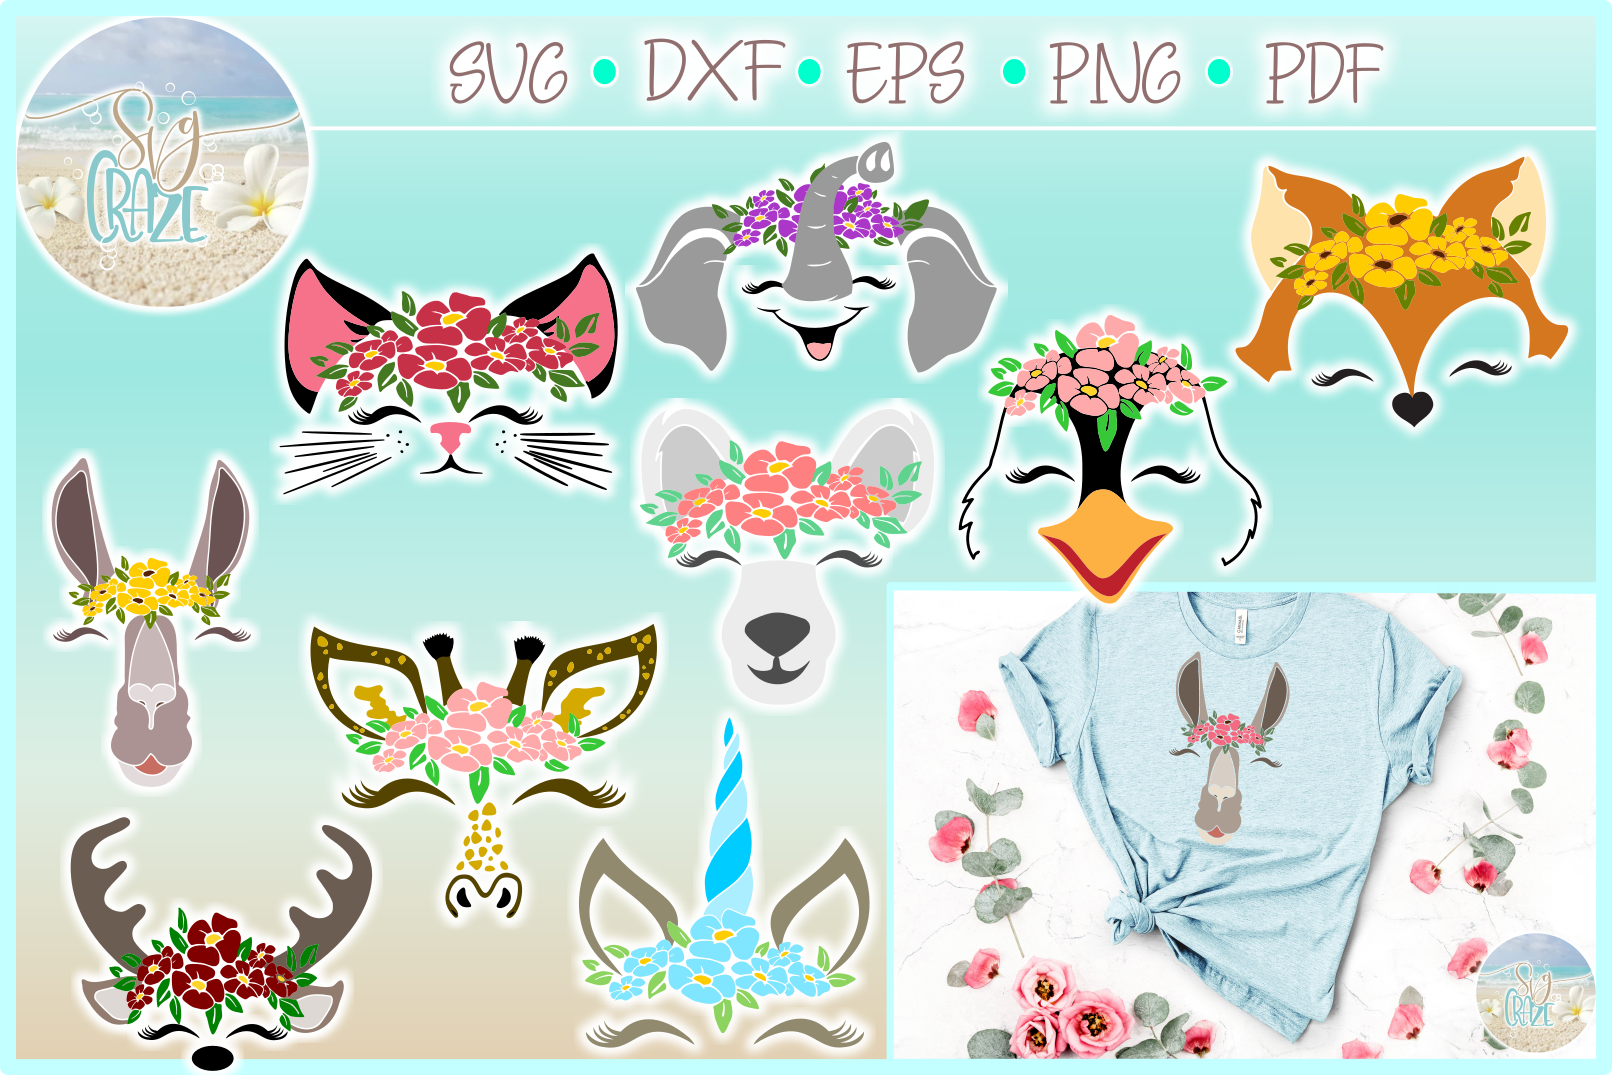 Animal Faces with Flowers Bundle SVG Dxf Eps Png PDF files example image 1